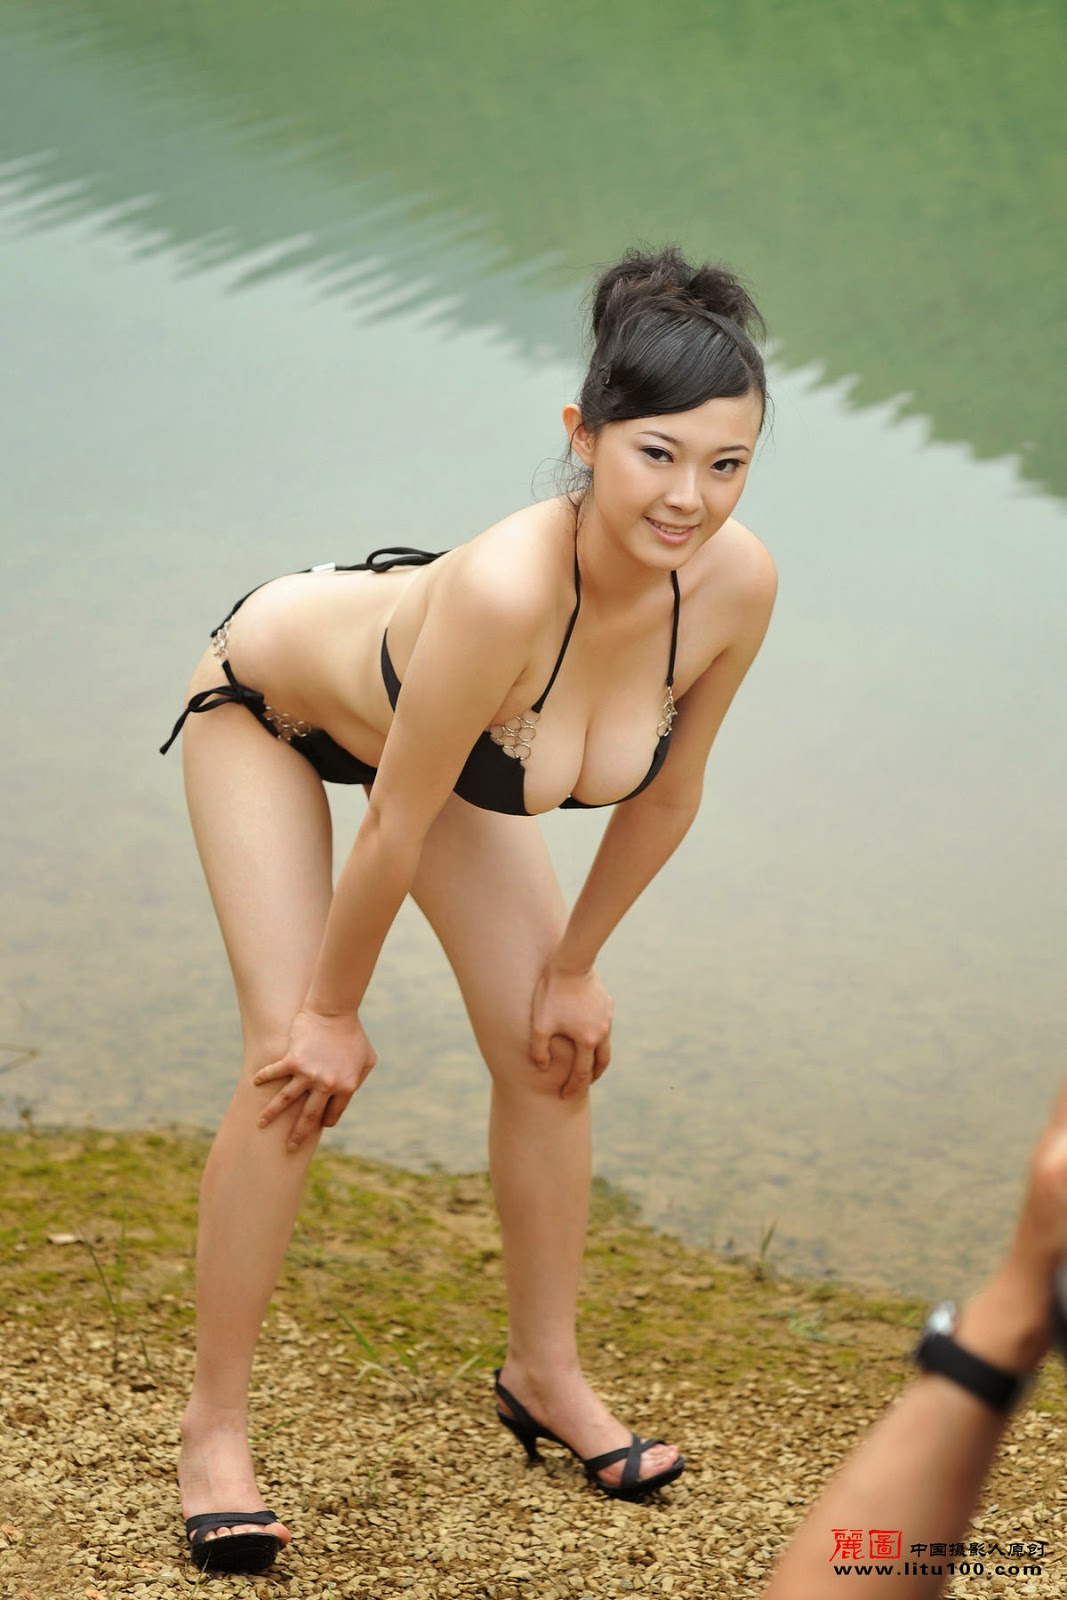 Finest Nude Photos Of China Gif